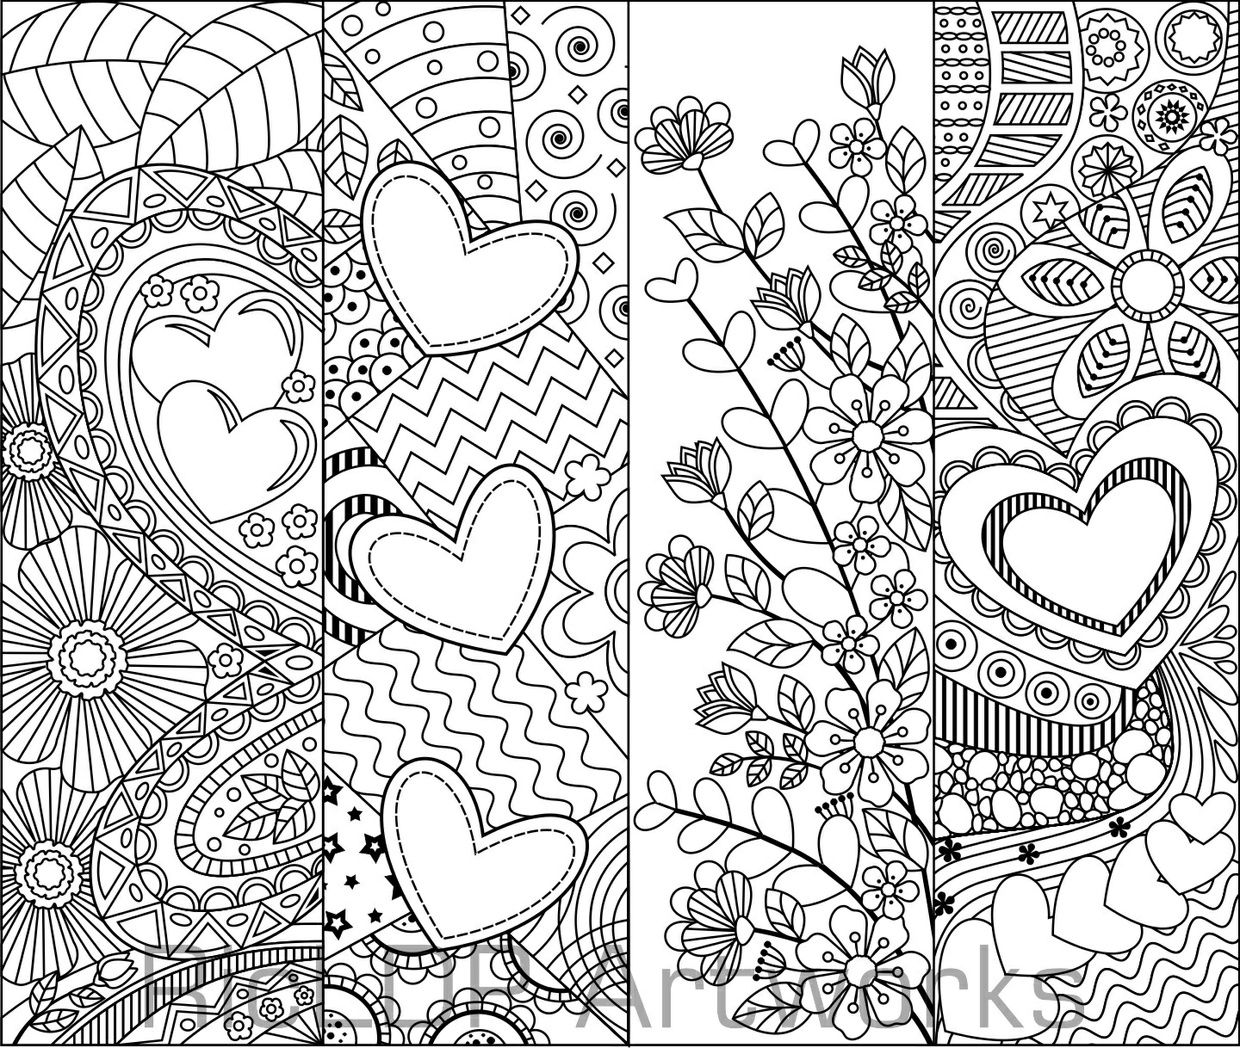 Set Of 8 Coloring Bookmarks With Hearts Art Doodles For Valentines Day Flowers Leaves Paisley Drawings Digital Download Coloring Bookmarks Coloring Pages Bookmarks Printable